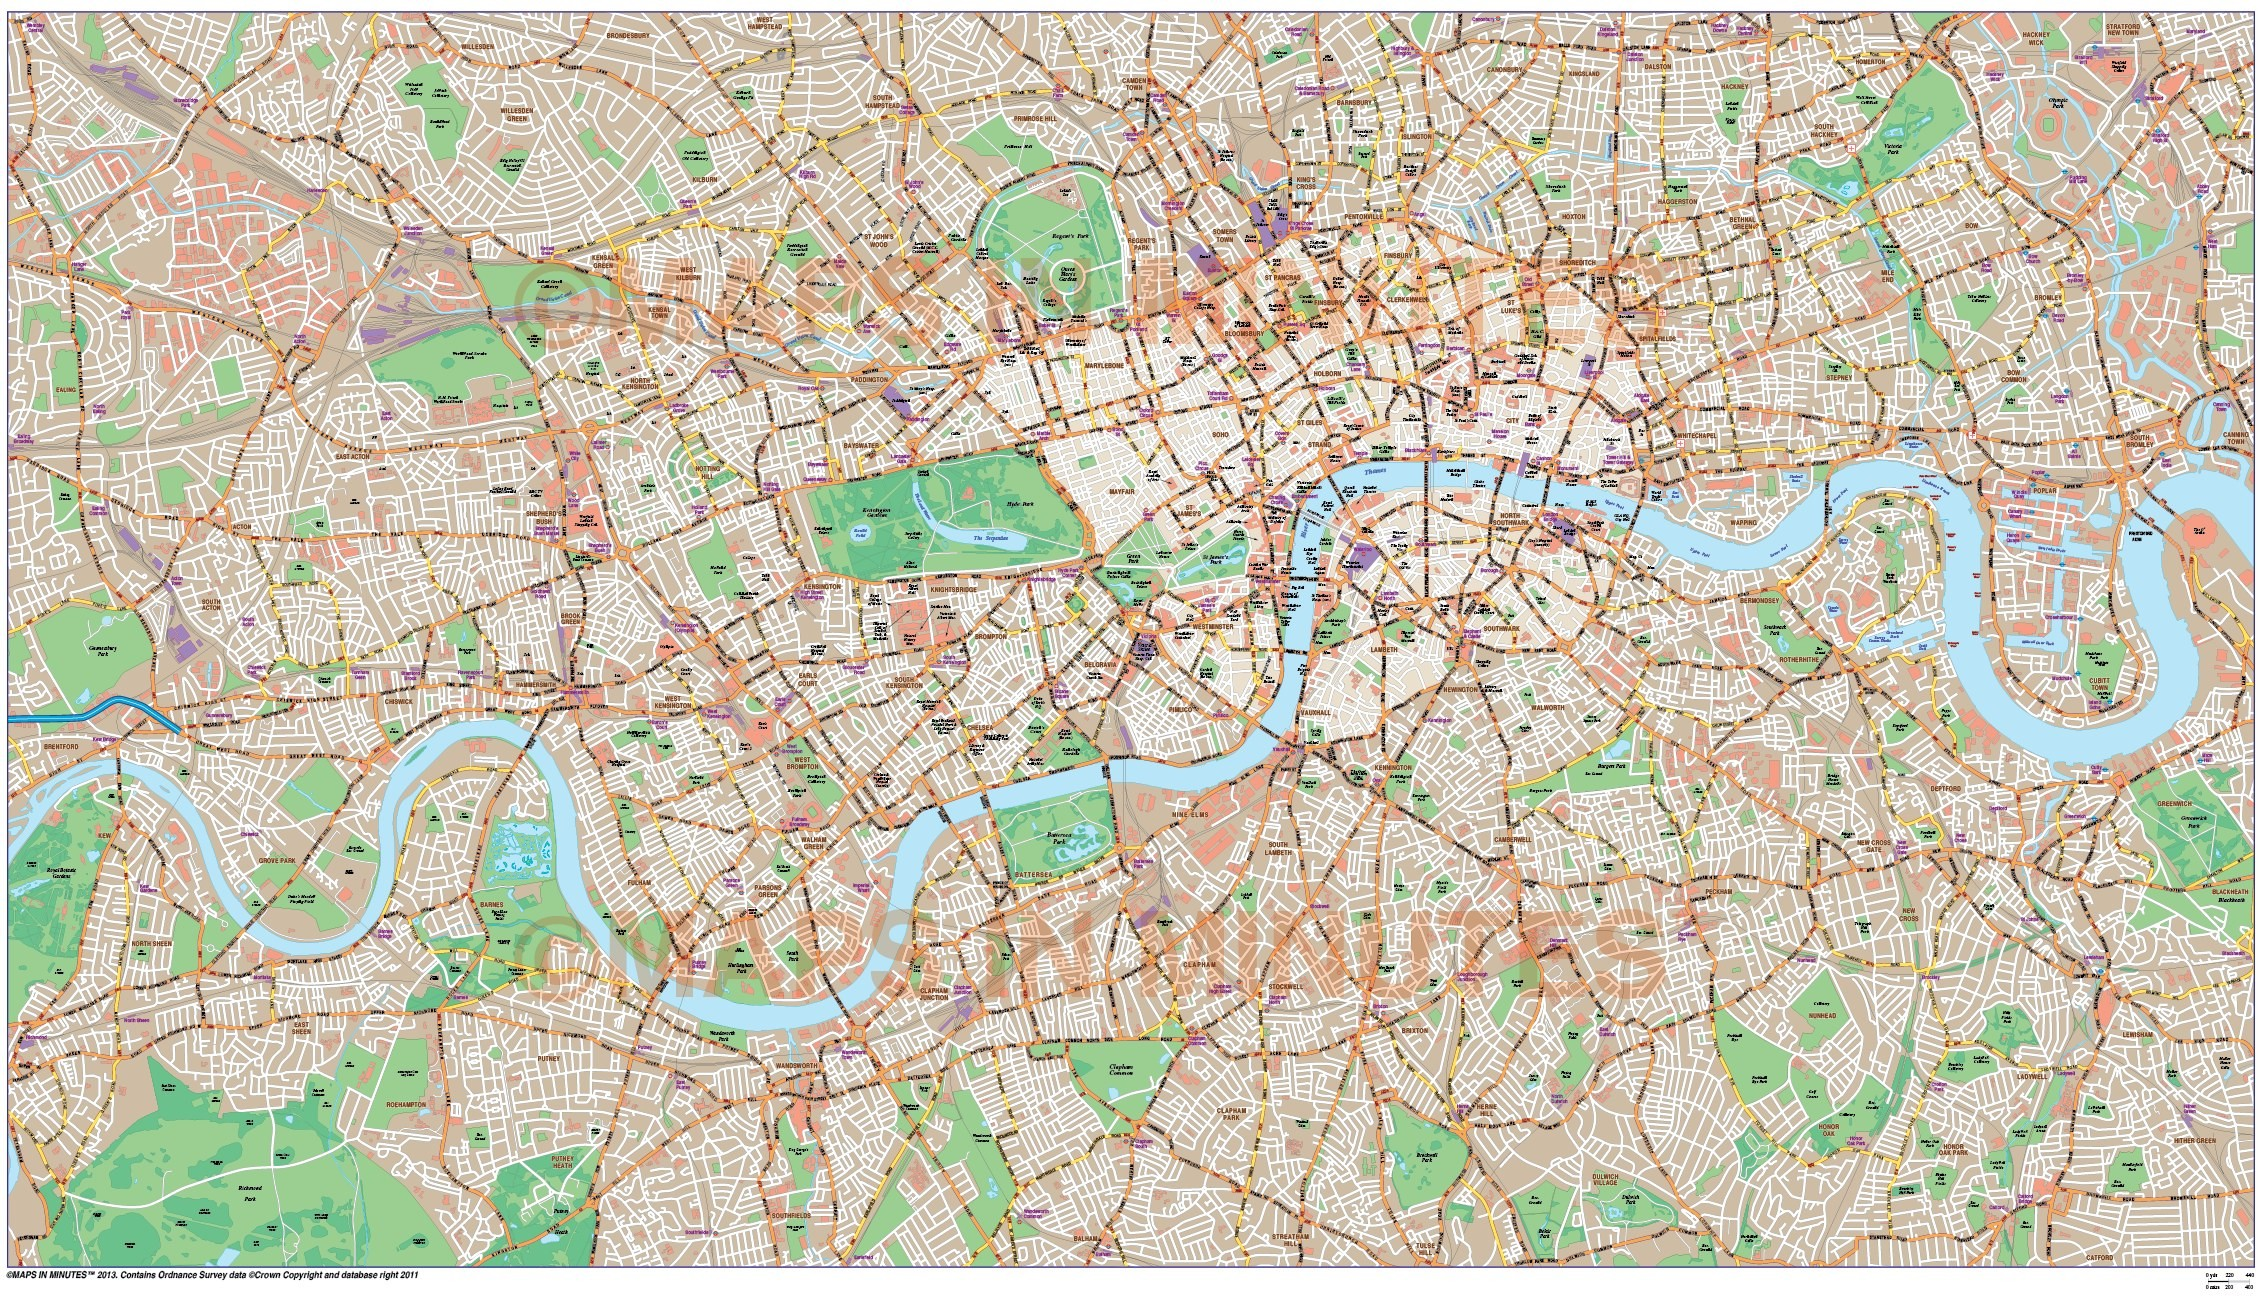 London Large Base Map 10 000 Scale In Illustrator Cs Format